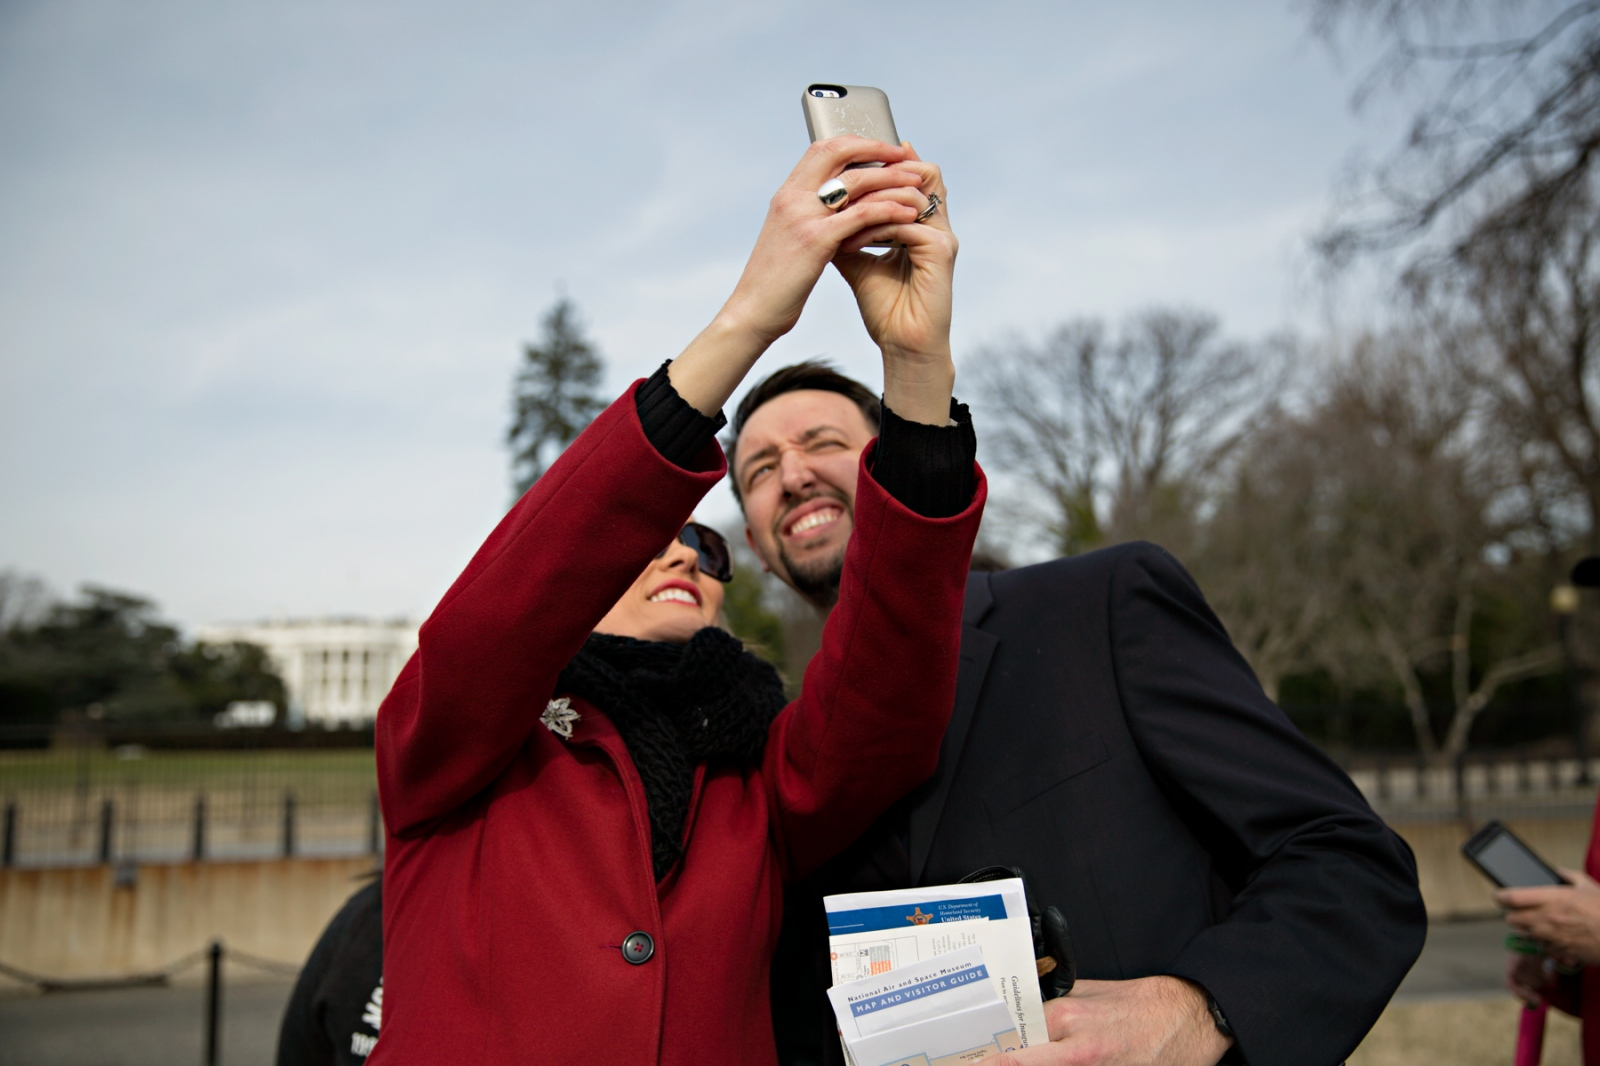 January 19, 2017 - Washington, DC, United States: A person takes a selfie of herself and her companion in front of the Whitehouse.